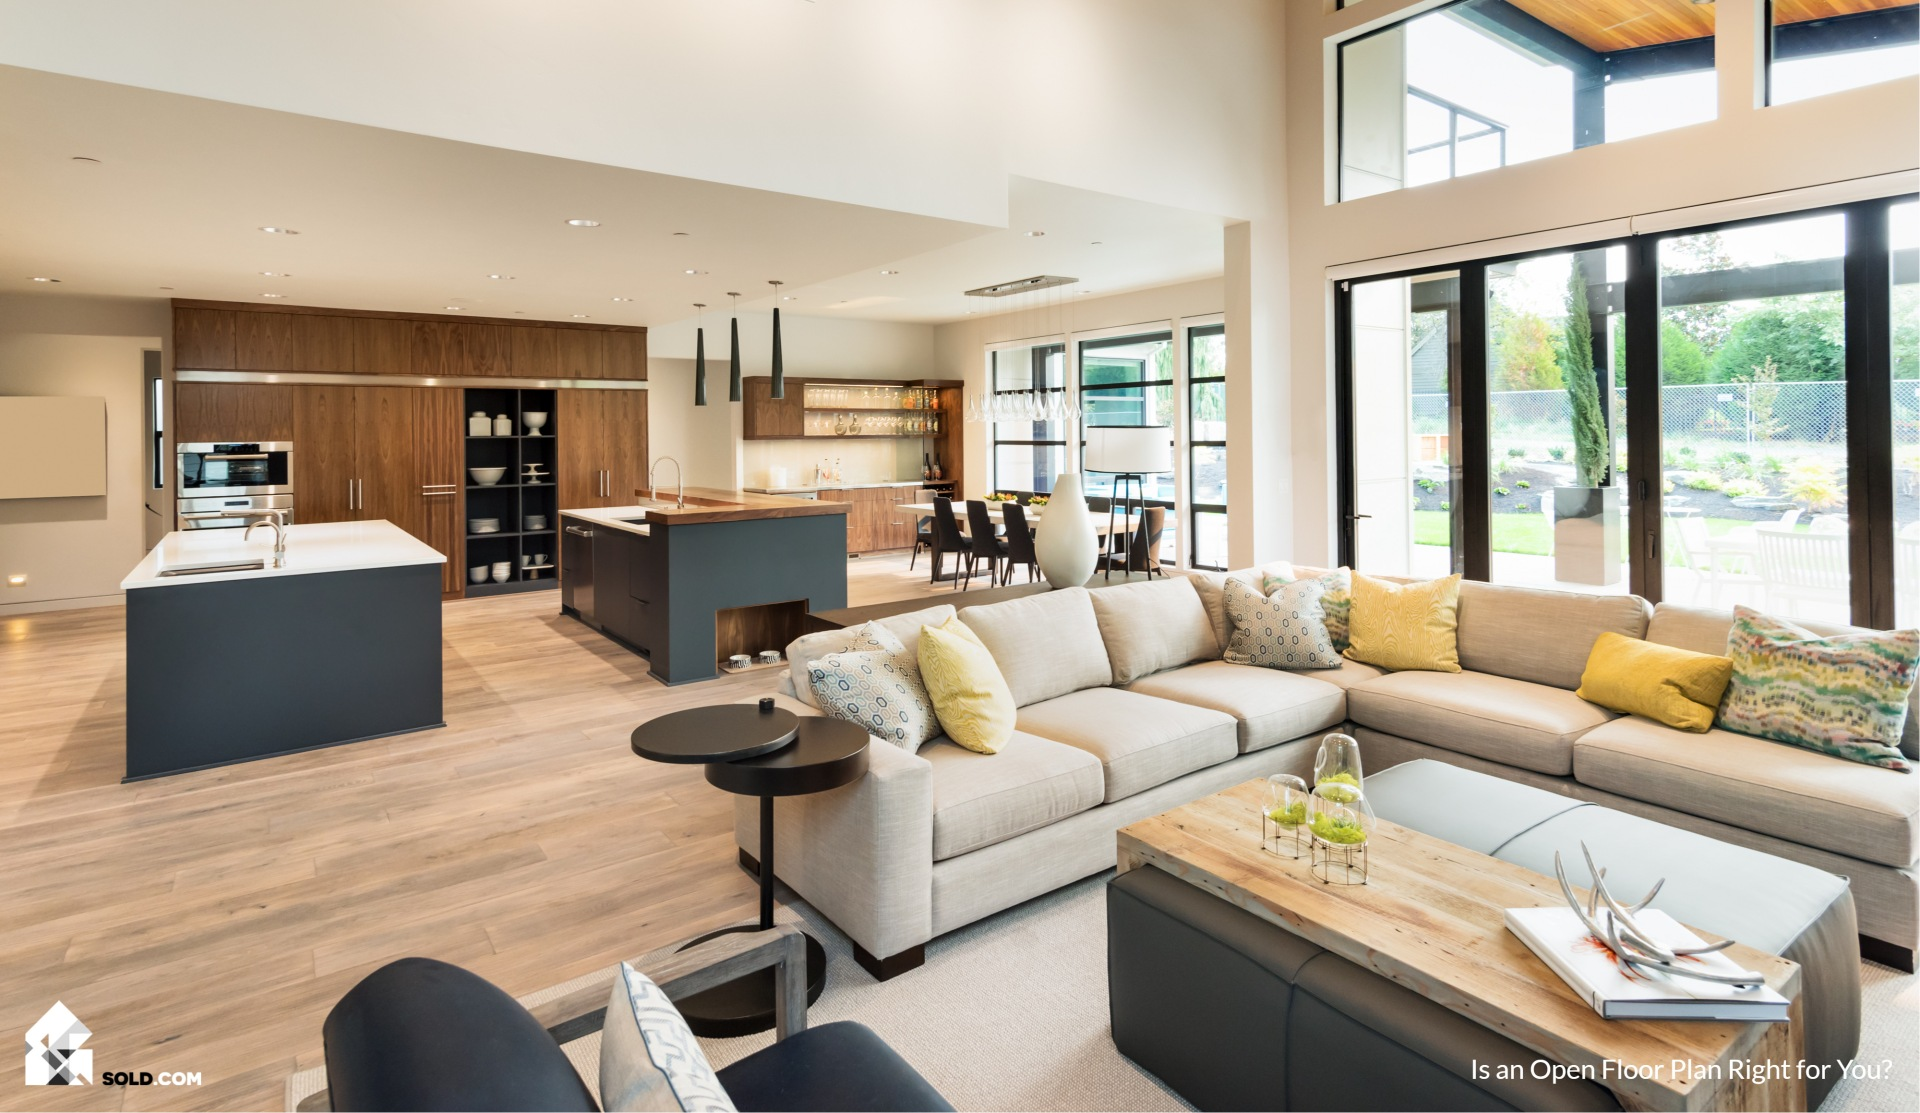 Is an Open Floor Plan Right for You?